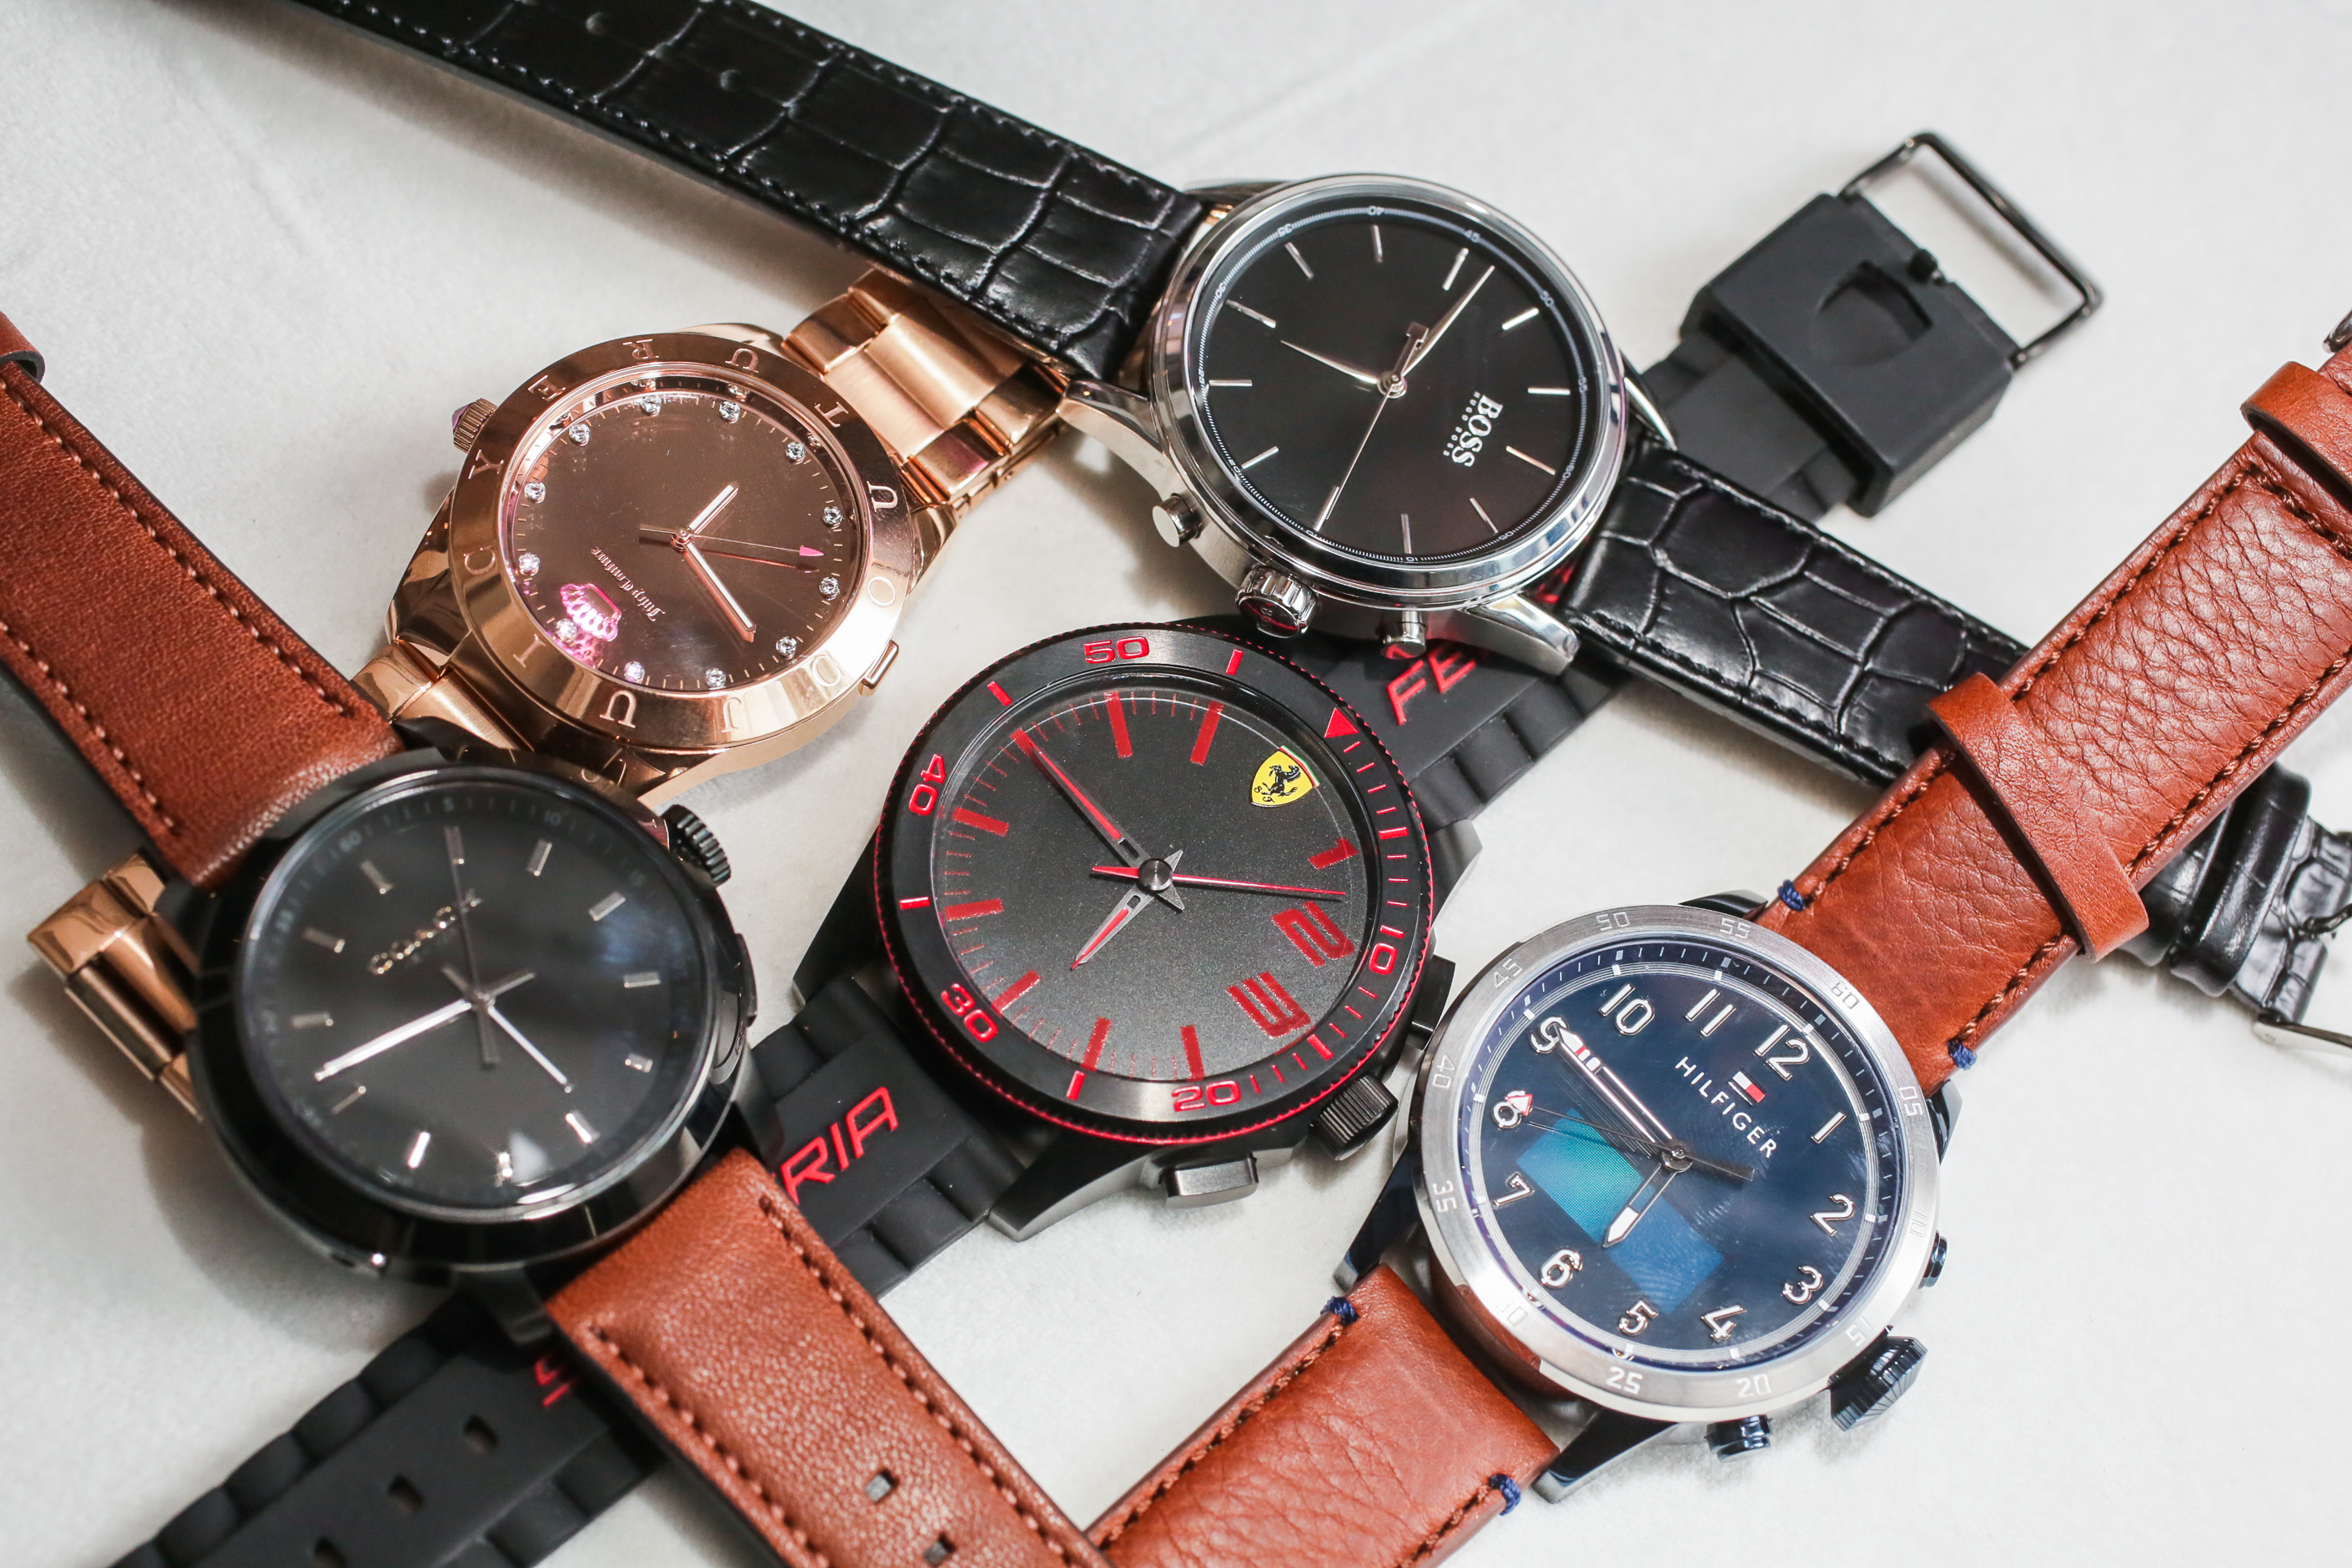 hp-watches-02.jpg